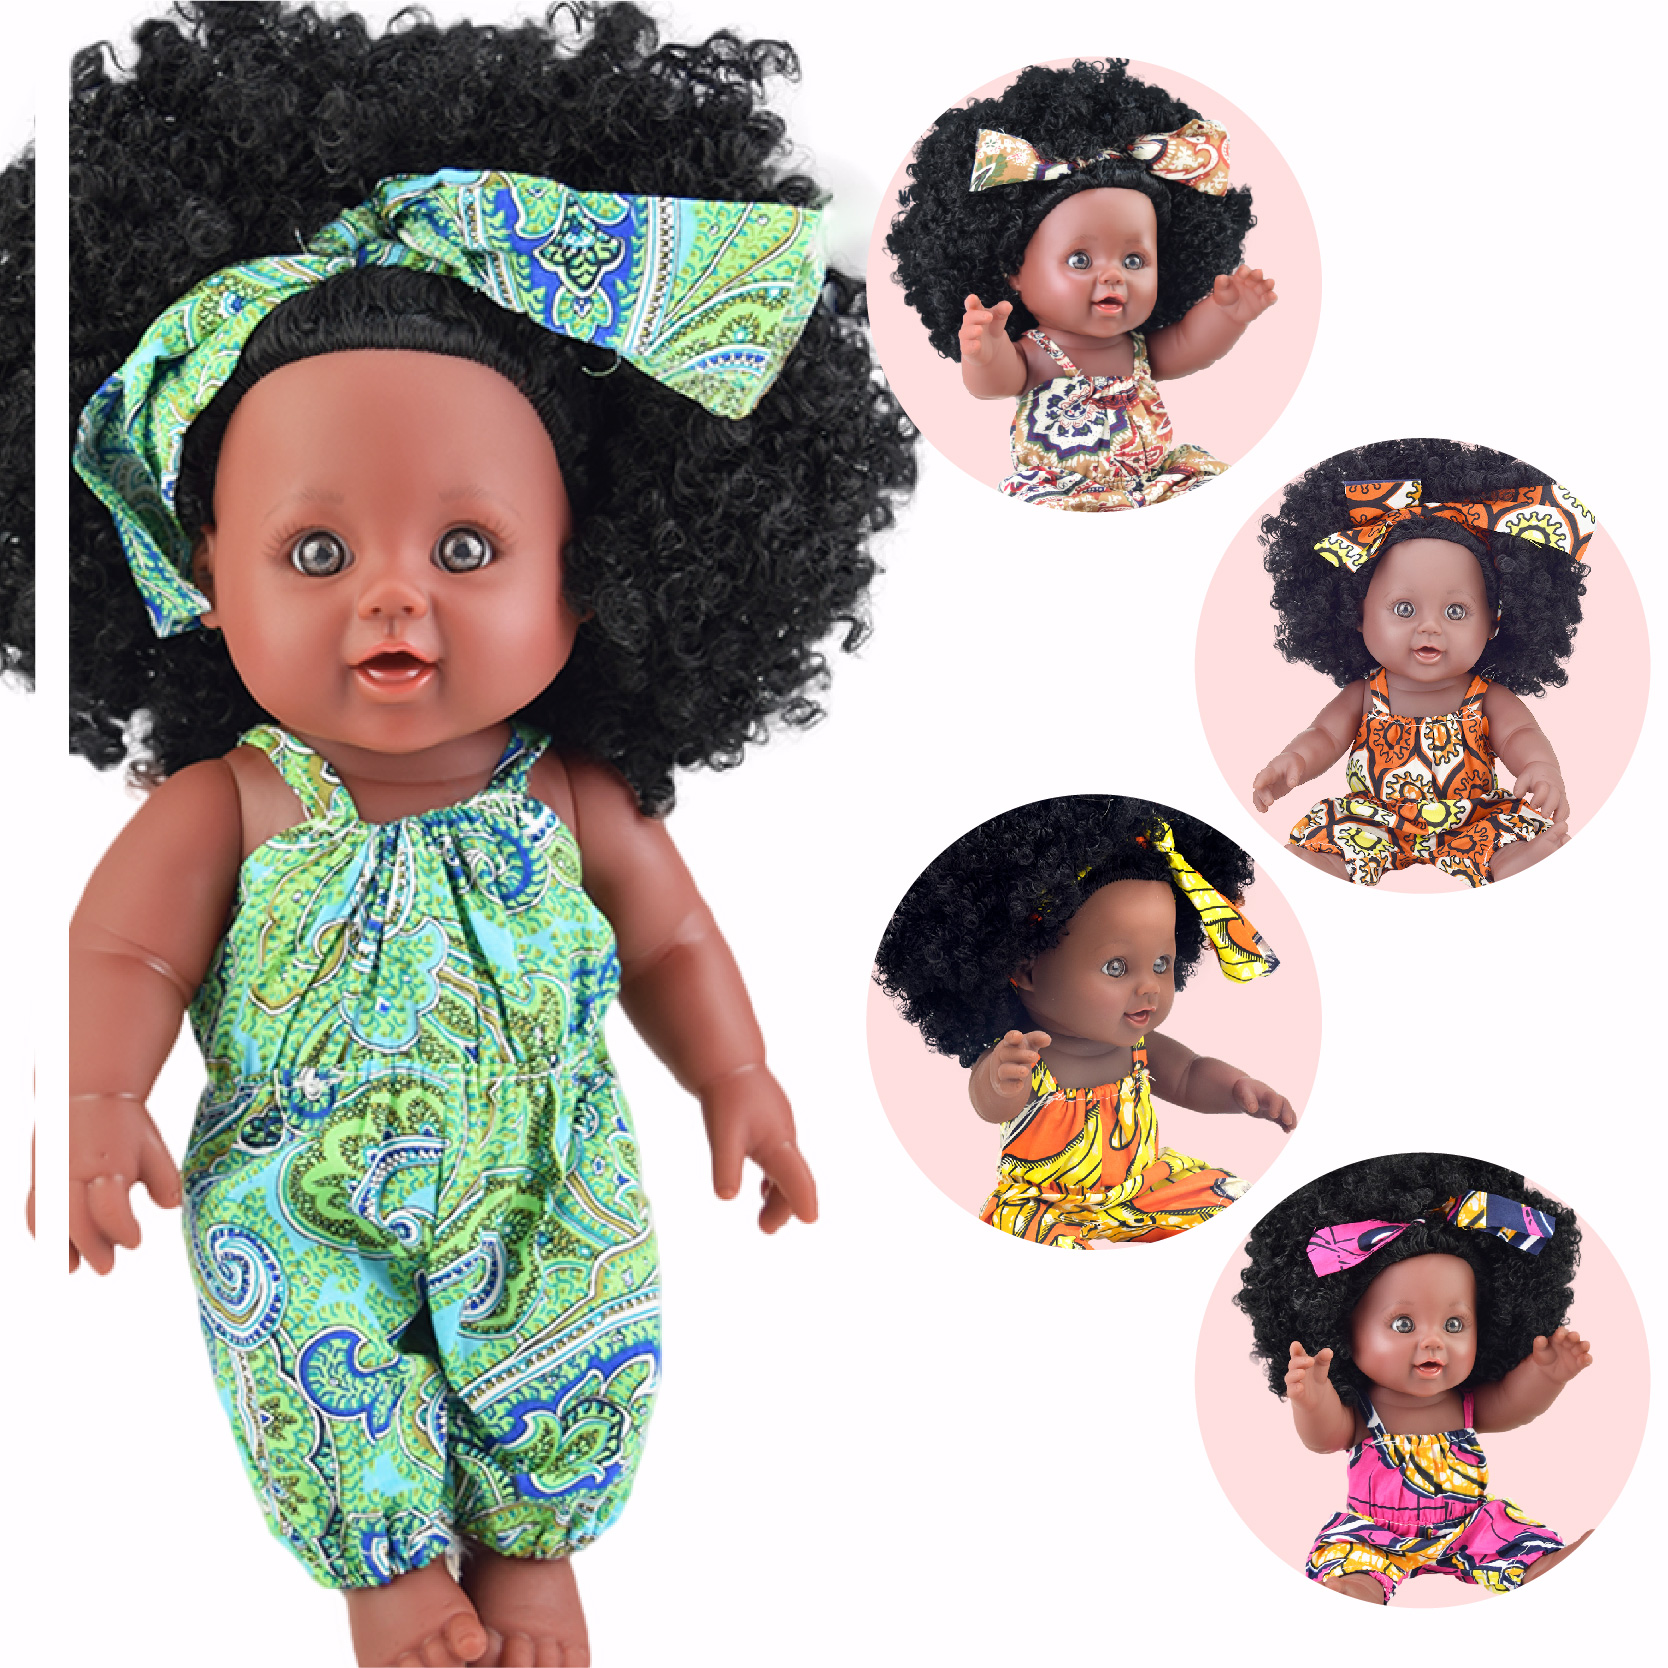 black  baby dolls pop green African! 12inch  lol reborn silicone vinyl 30cm newborn poupee boneca baby soft toy girl kid todder